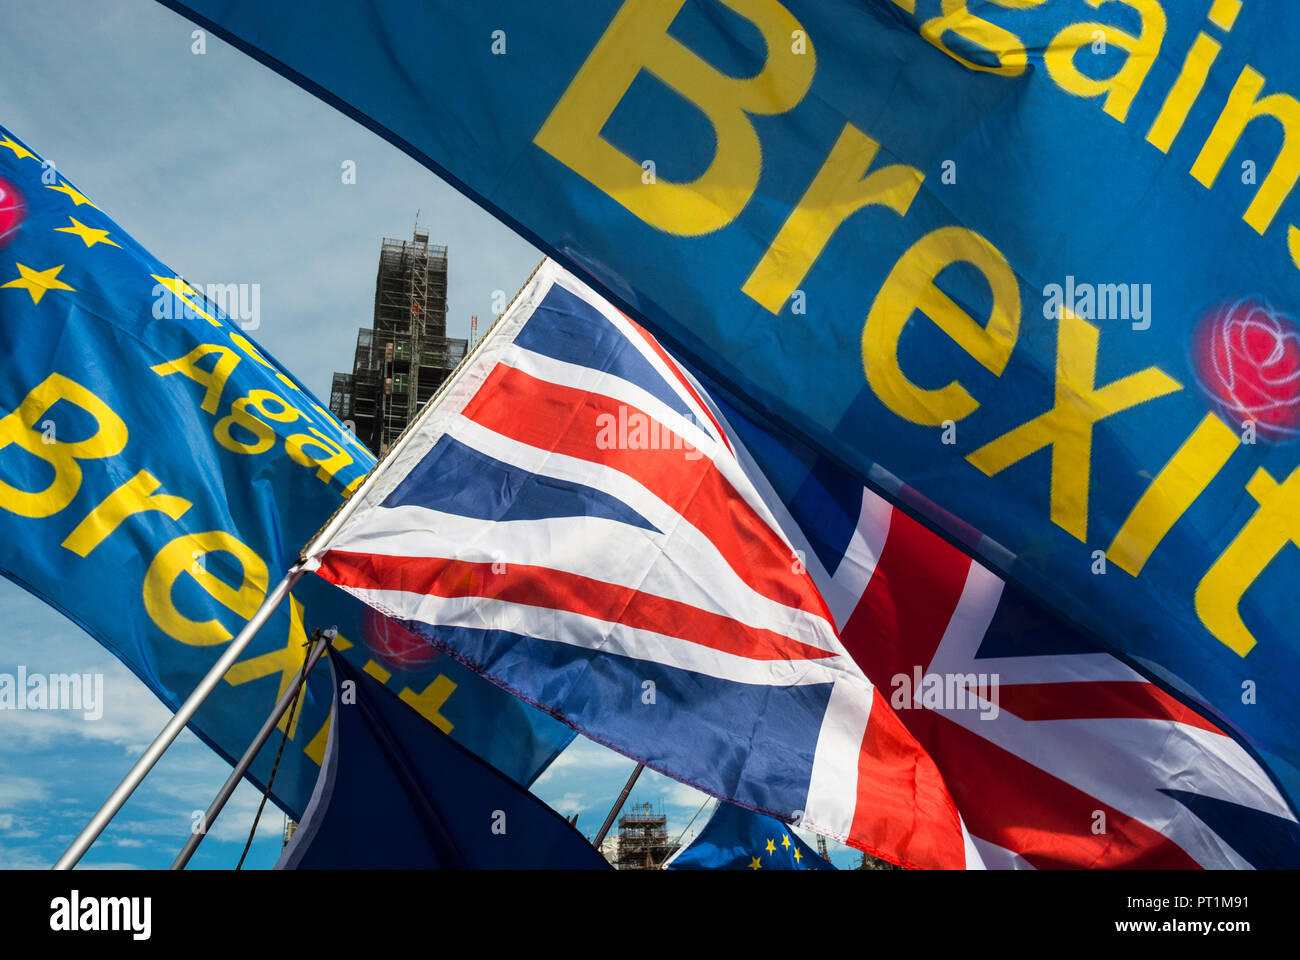 Colourful flags, blue with yellow writing and stars 'Against BREXIT' next to Union Jack. Sunshine. - Stock Image